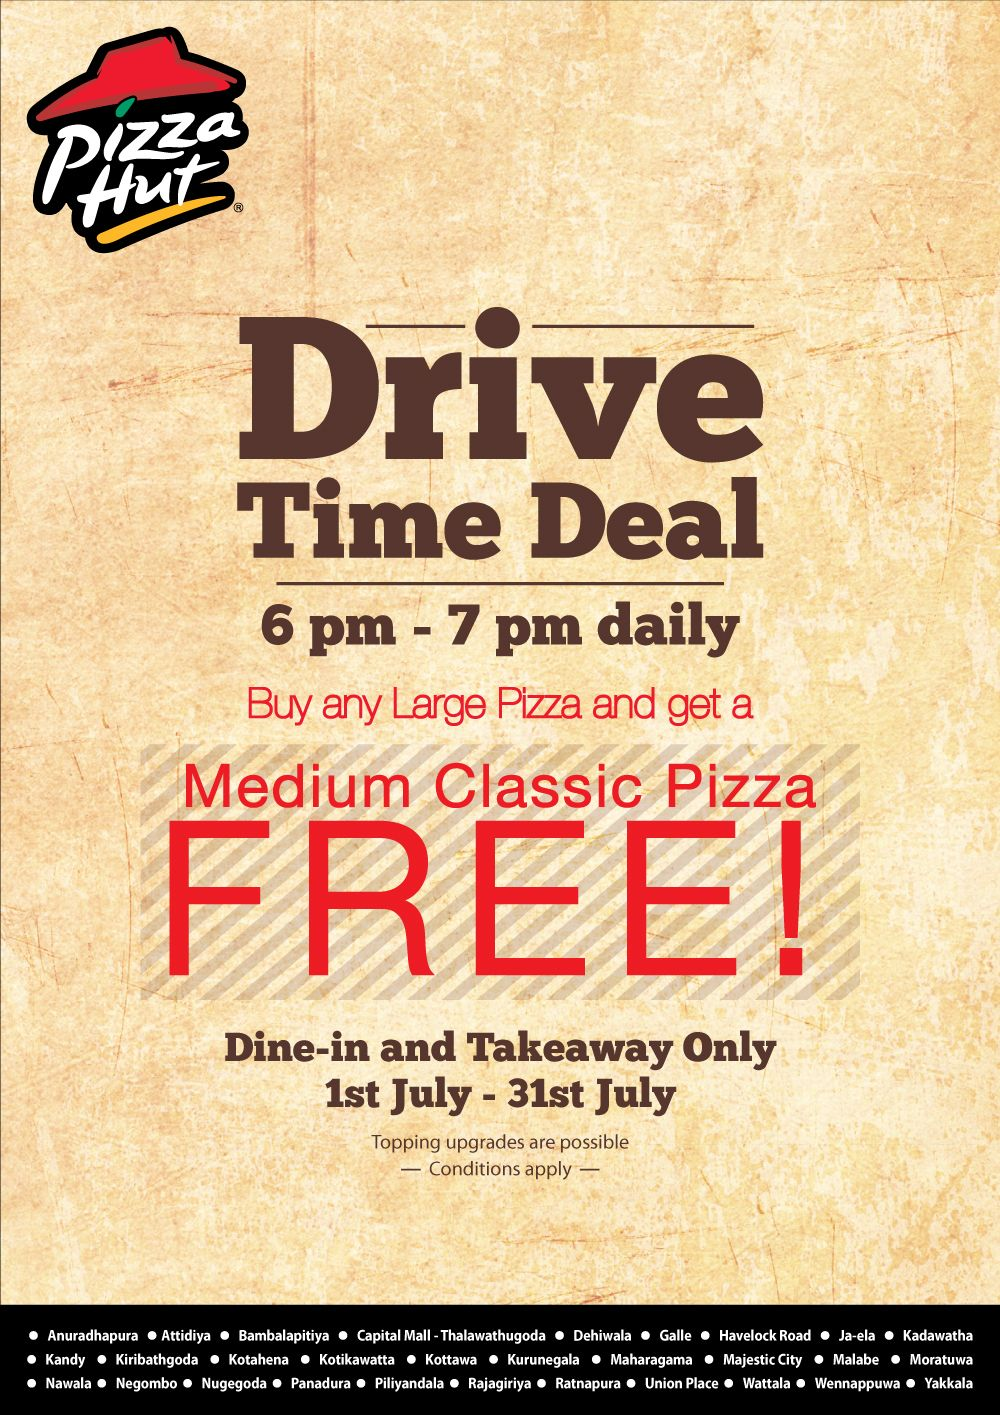 Drive Time Deal from Pizza Hut Classic pizza, Large